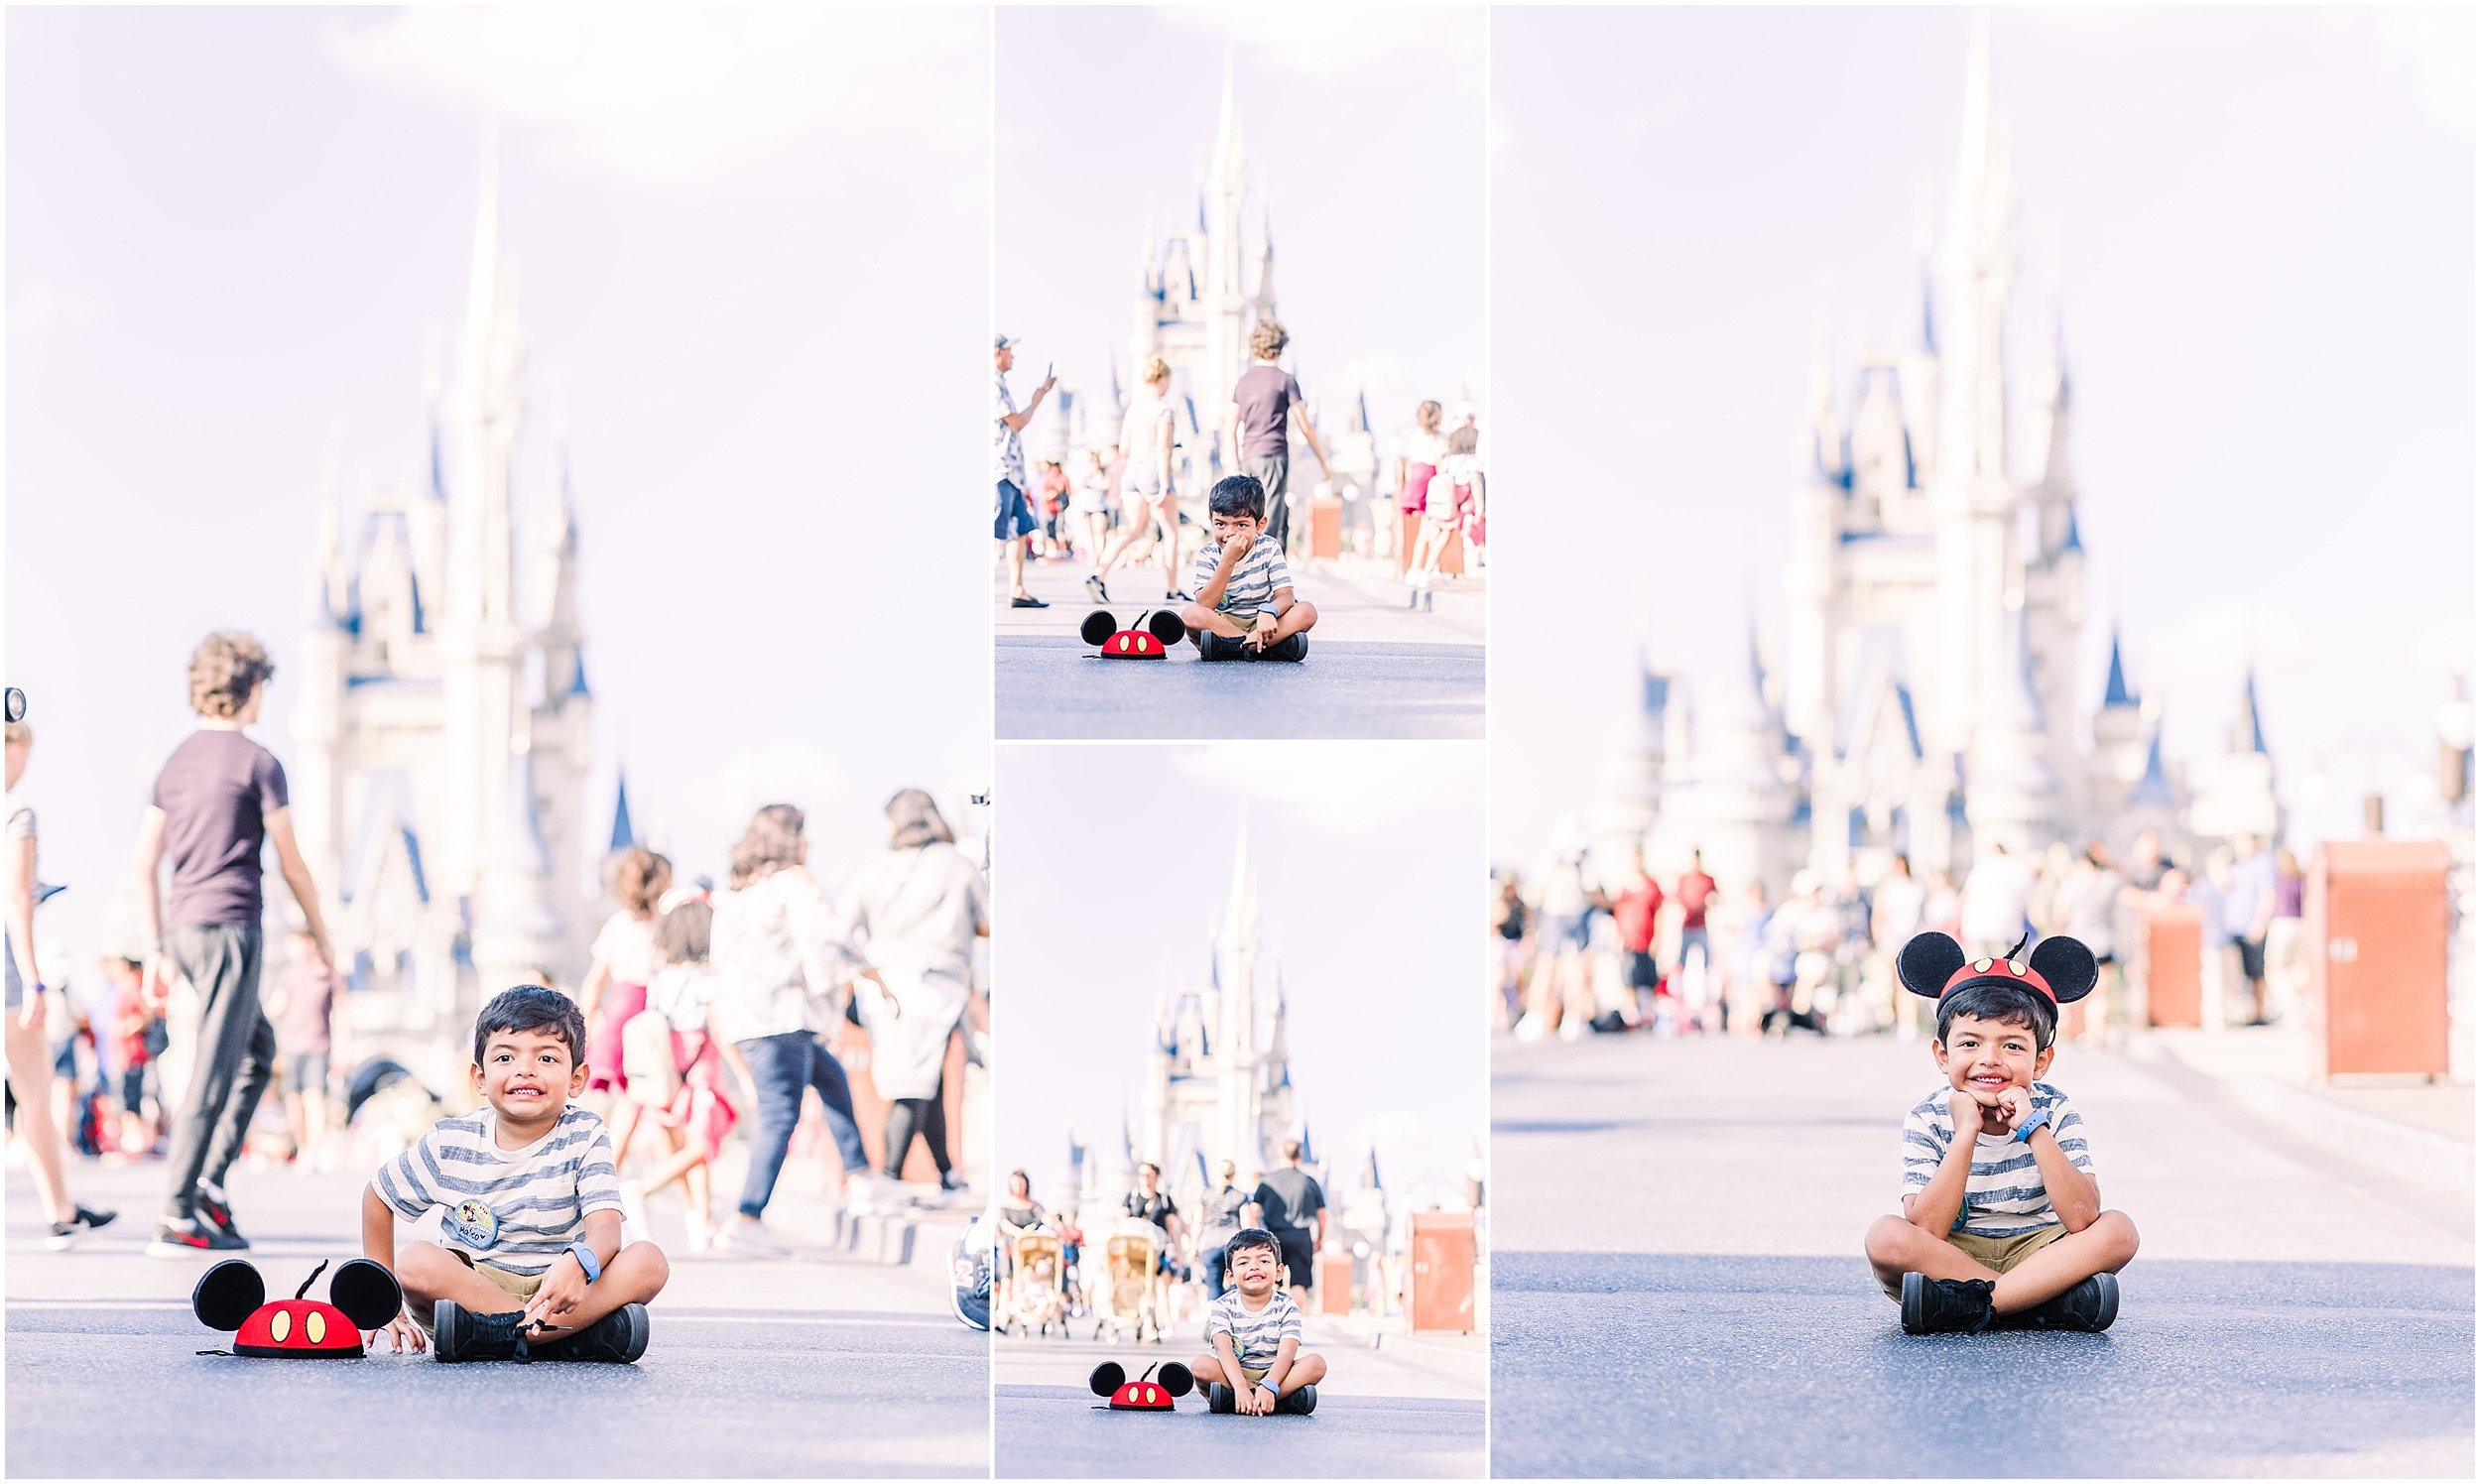 Ventura-California-and-Tallahassee-Florida-Wedding-Photographer-Mateo-turns-five-at-Disney-World-in-Orlando-Florida_0009.jpg